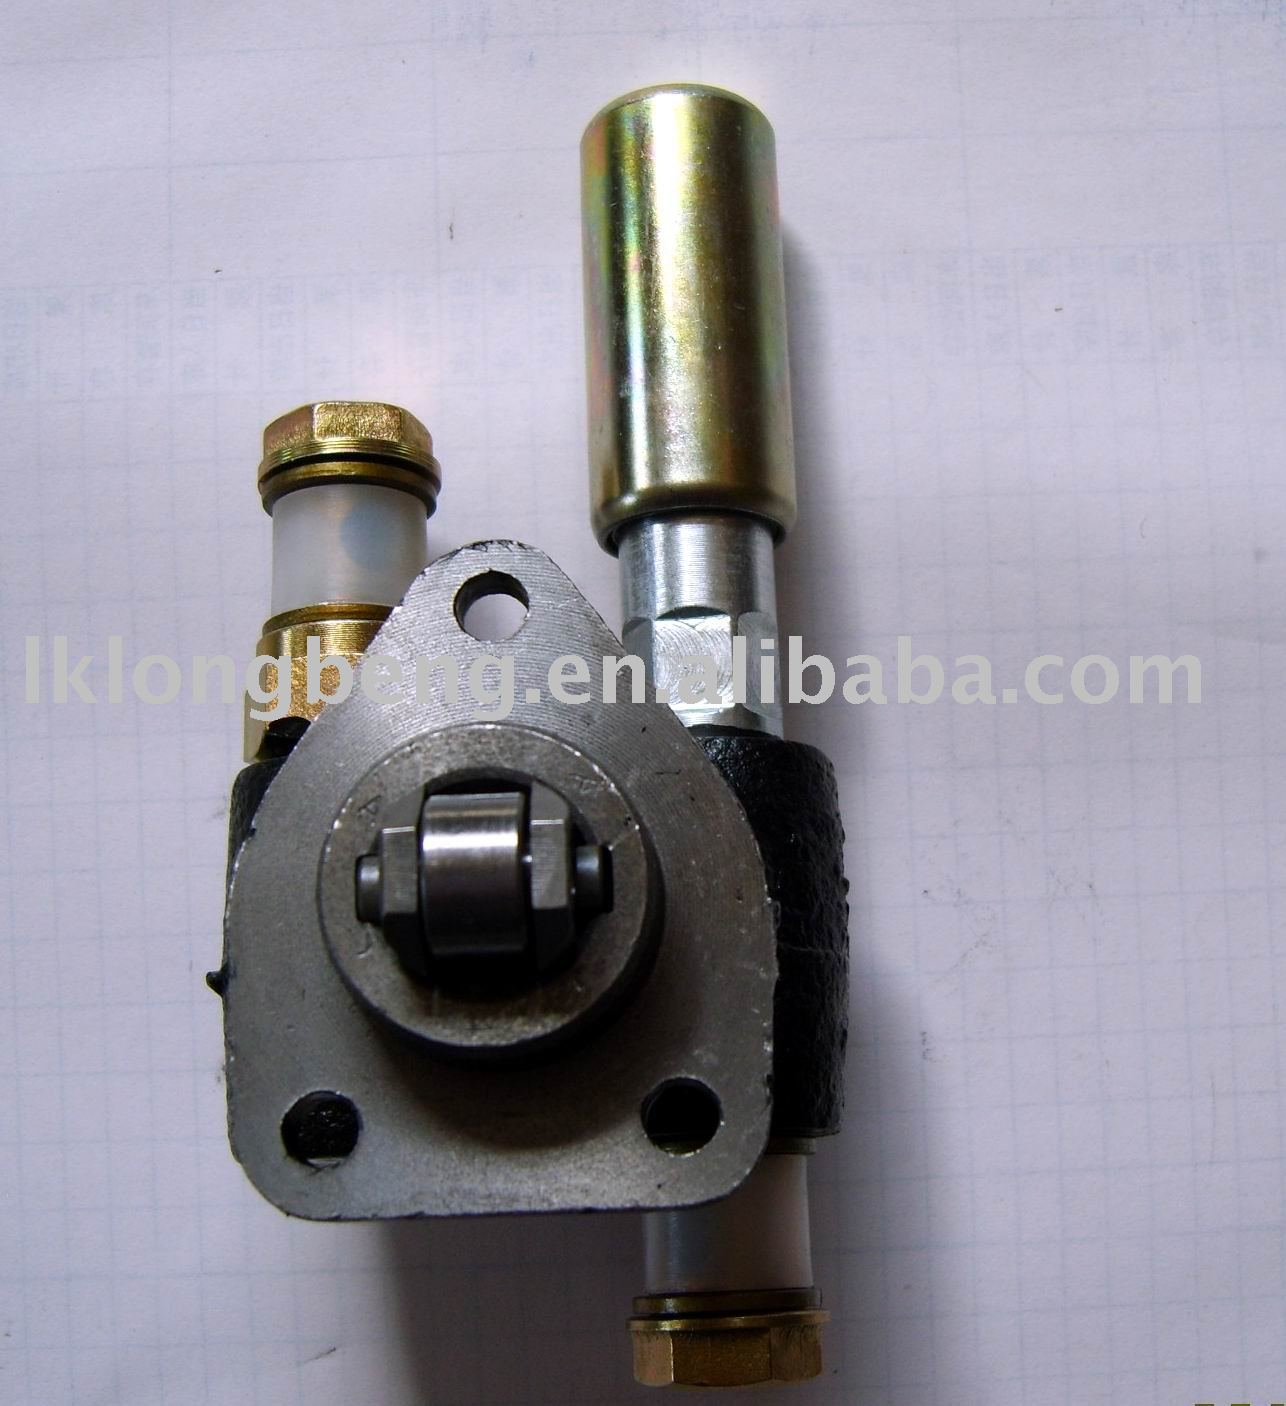 S503 Fuel supply pump